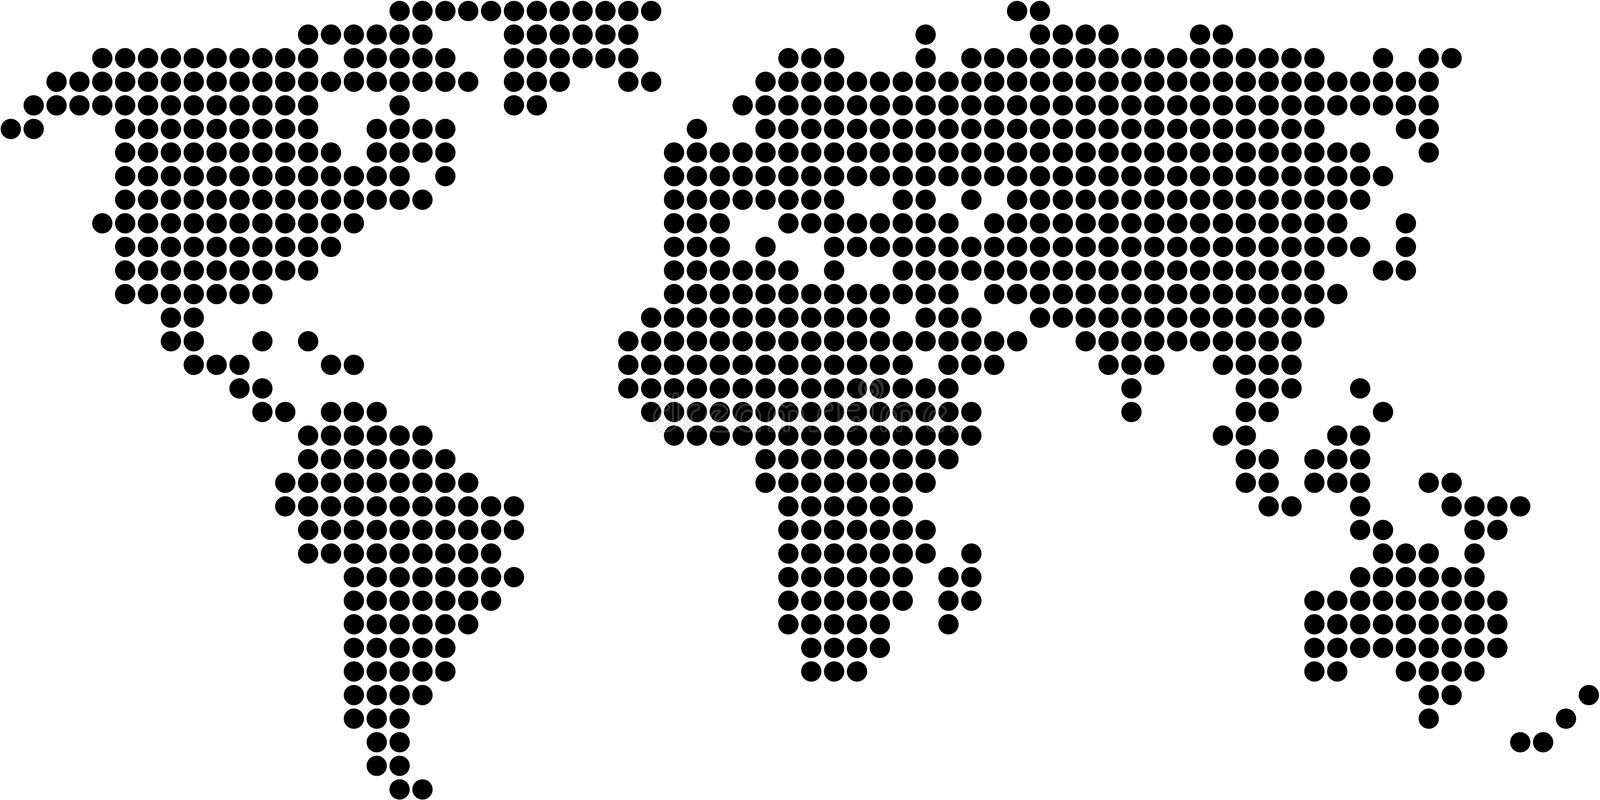 Dot map. Map of the world made up of dots - black design isolated on white